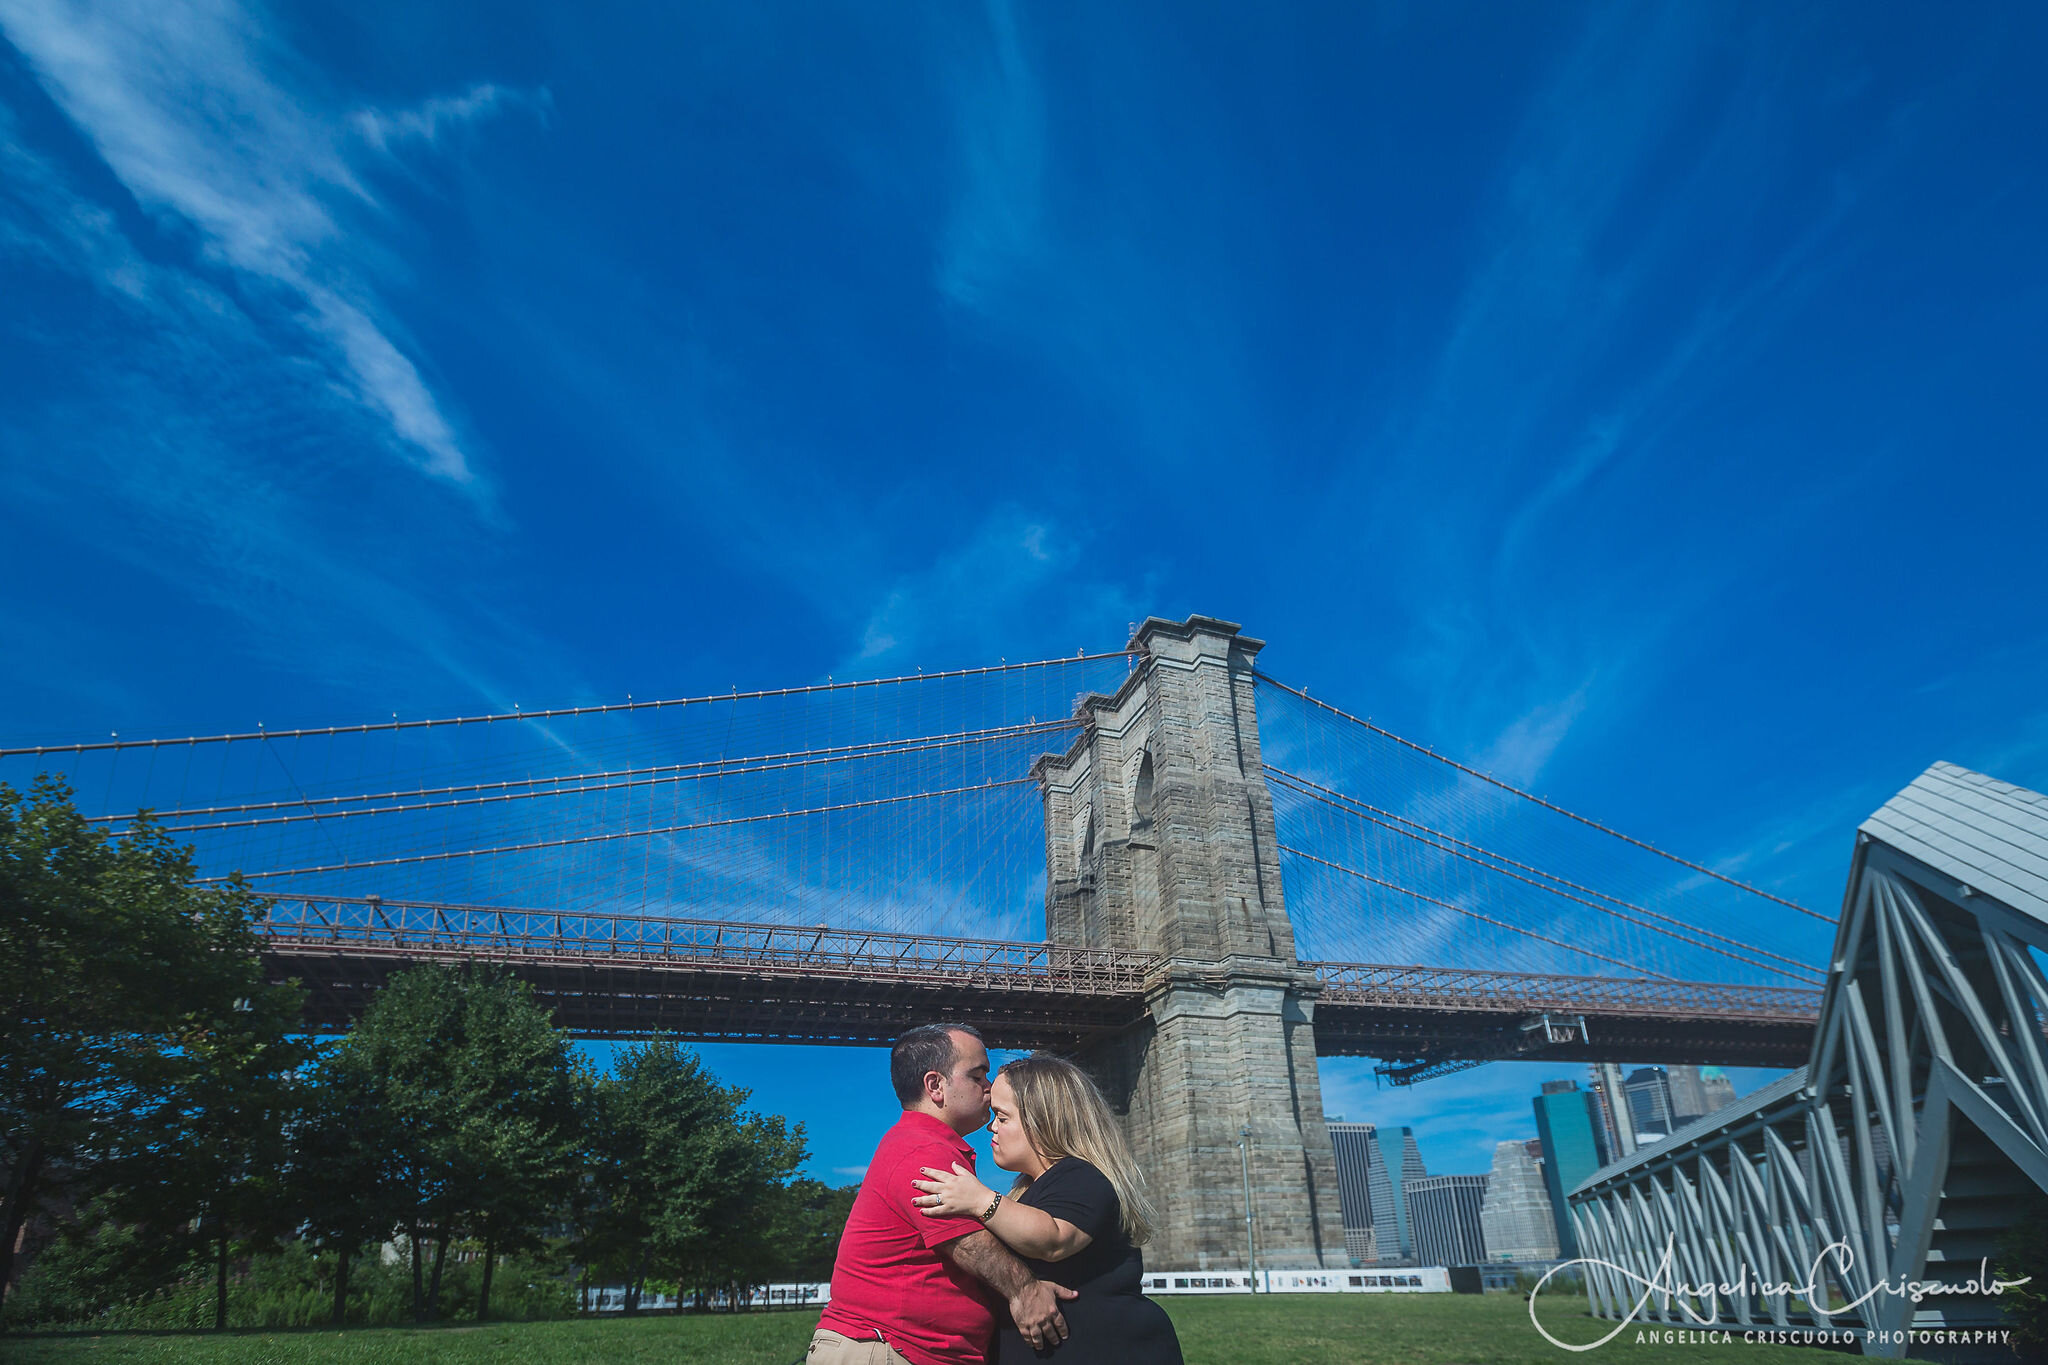 New York DUMBO Brooklyn Engagement Wedding Photos ©2019 Angelica Criscuolo Photography | All Rights Reserved | www.AngelicaCriscuoloPhotography.com | www.facebook.com/AngelicaCriscuoloPhotography